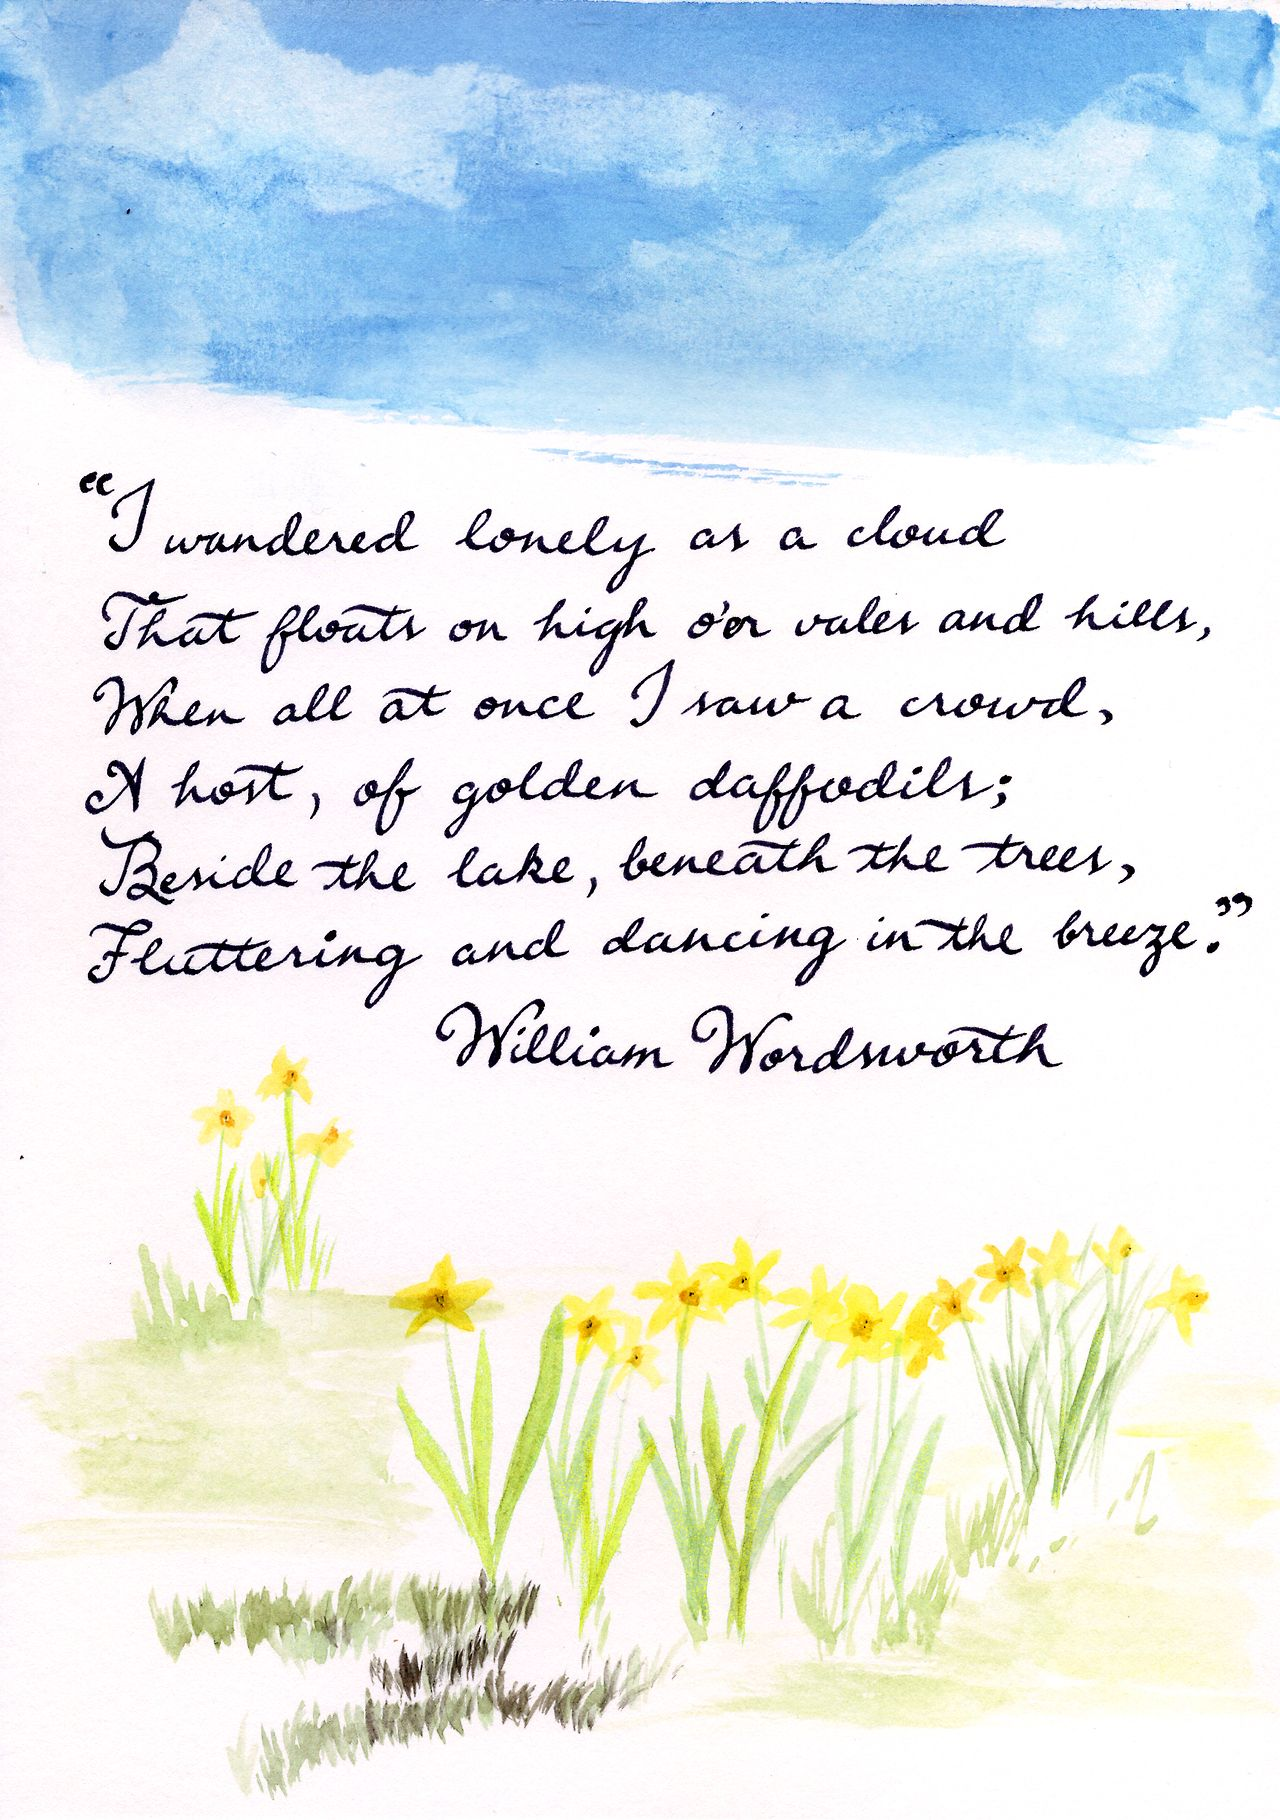 William Wordsworth I Wandered Lonely A Cloud That Float On High O Er Vale And Hill W Illustration Quote Theme Of